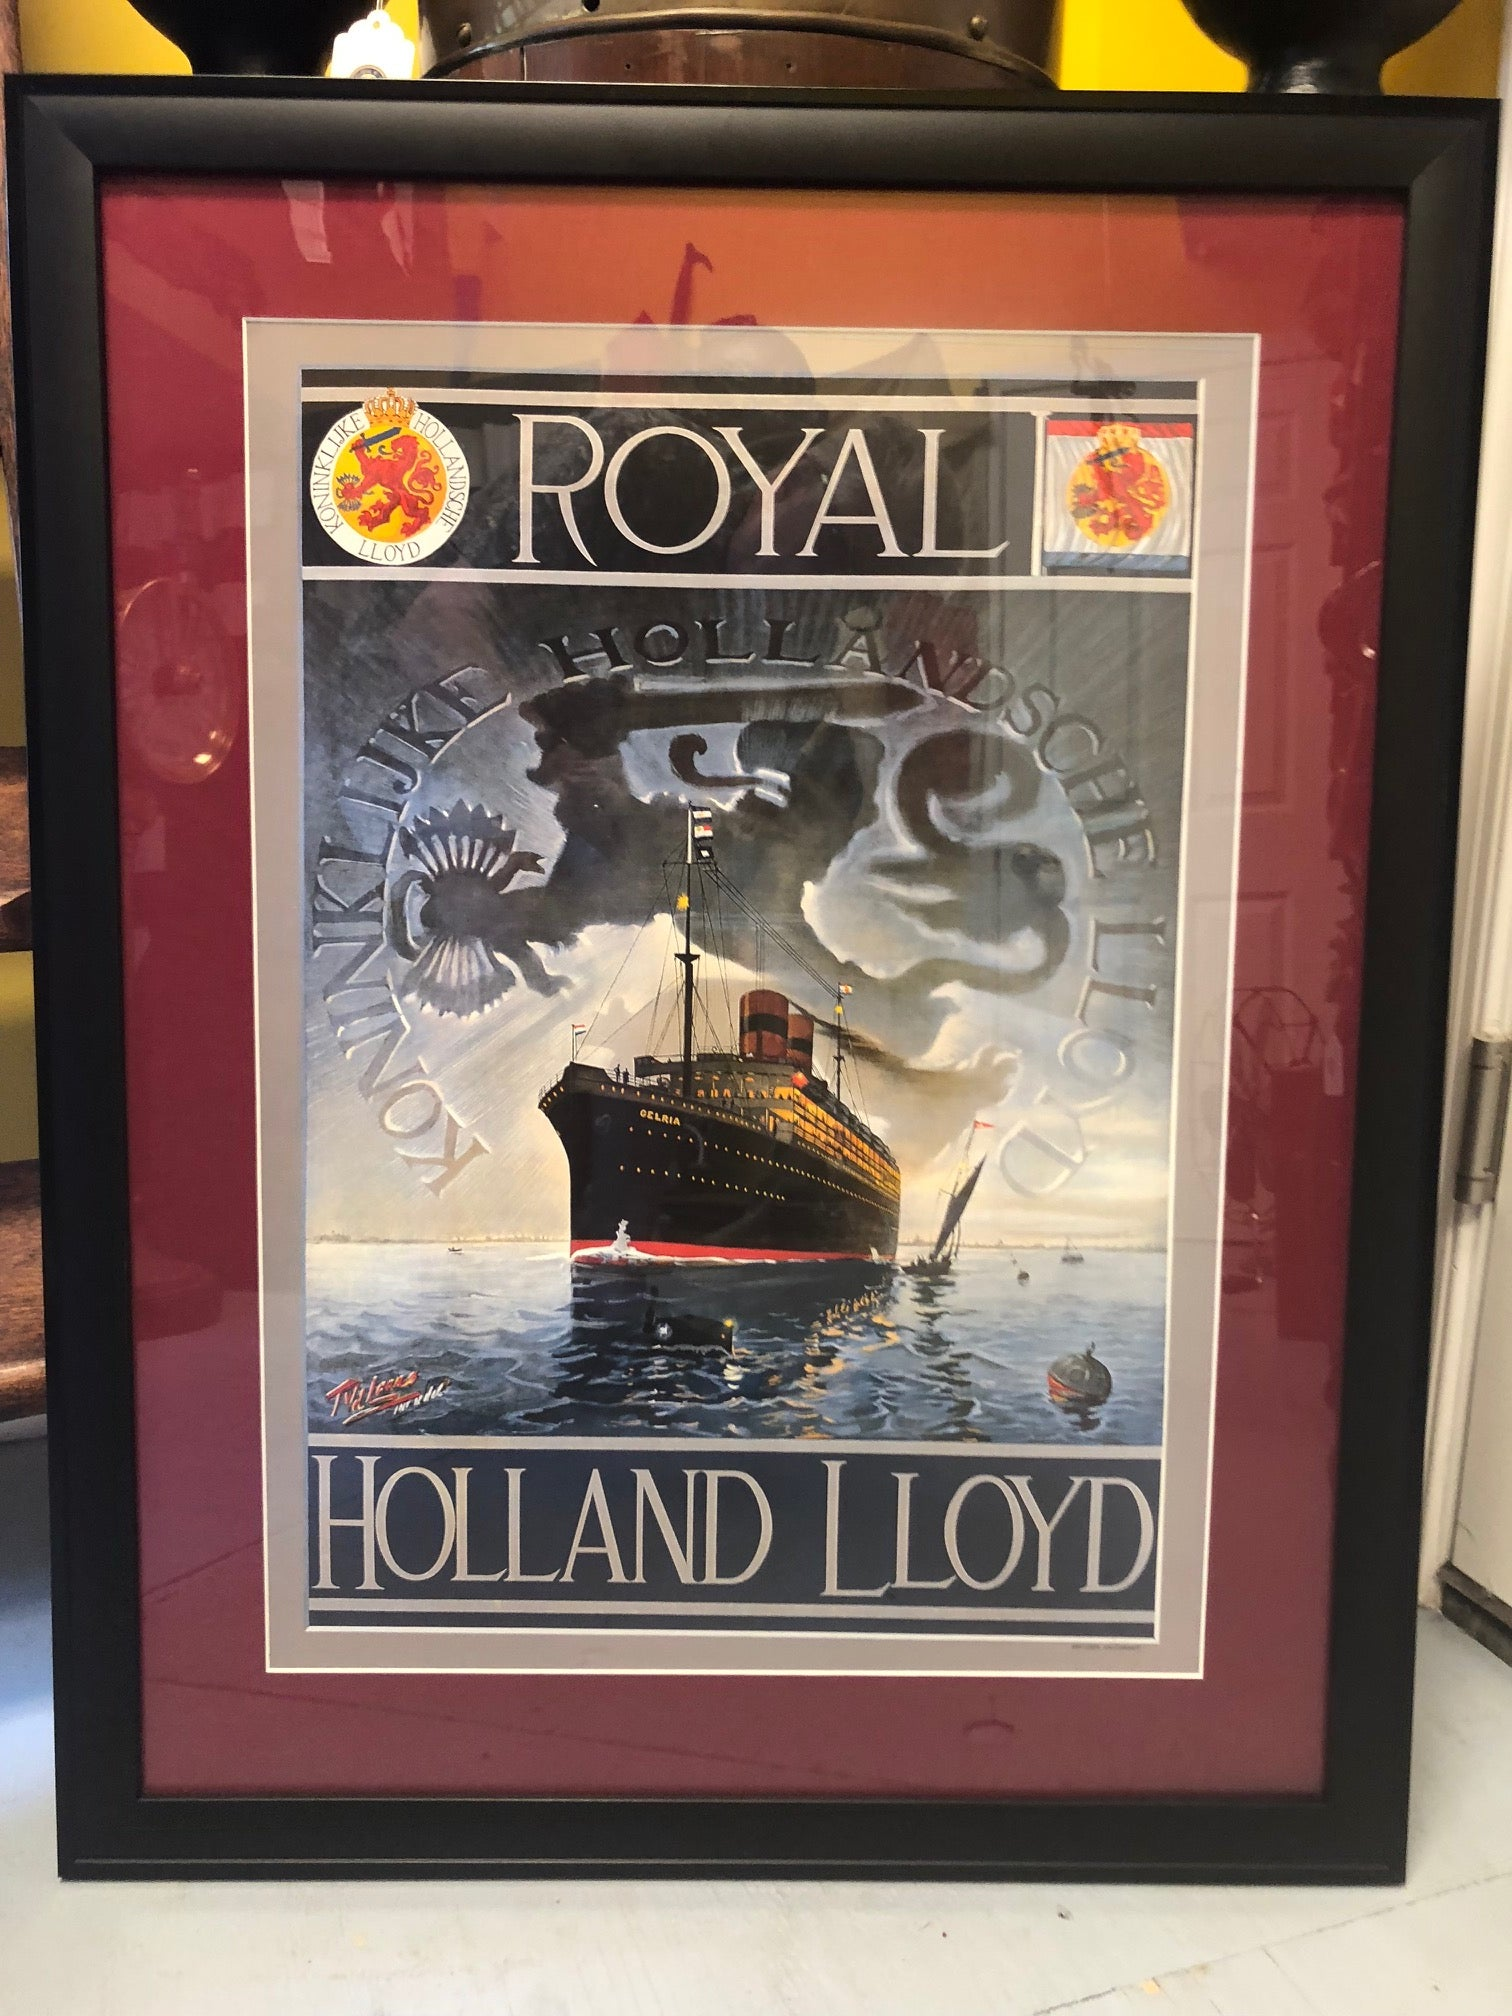 Advertising Poster, Royal Holland Lloyd Cruise Lines - Annapolis Maritime Antiques